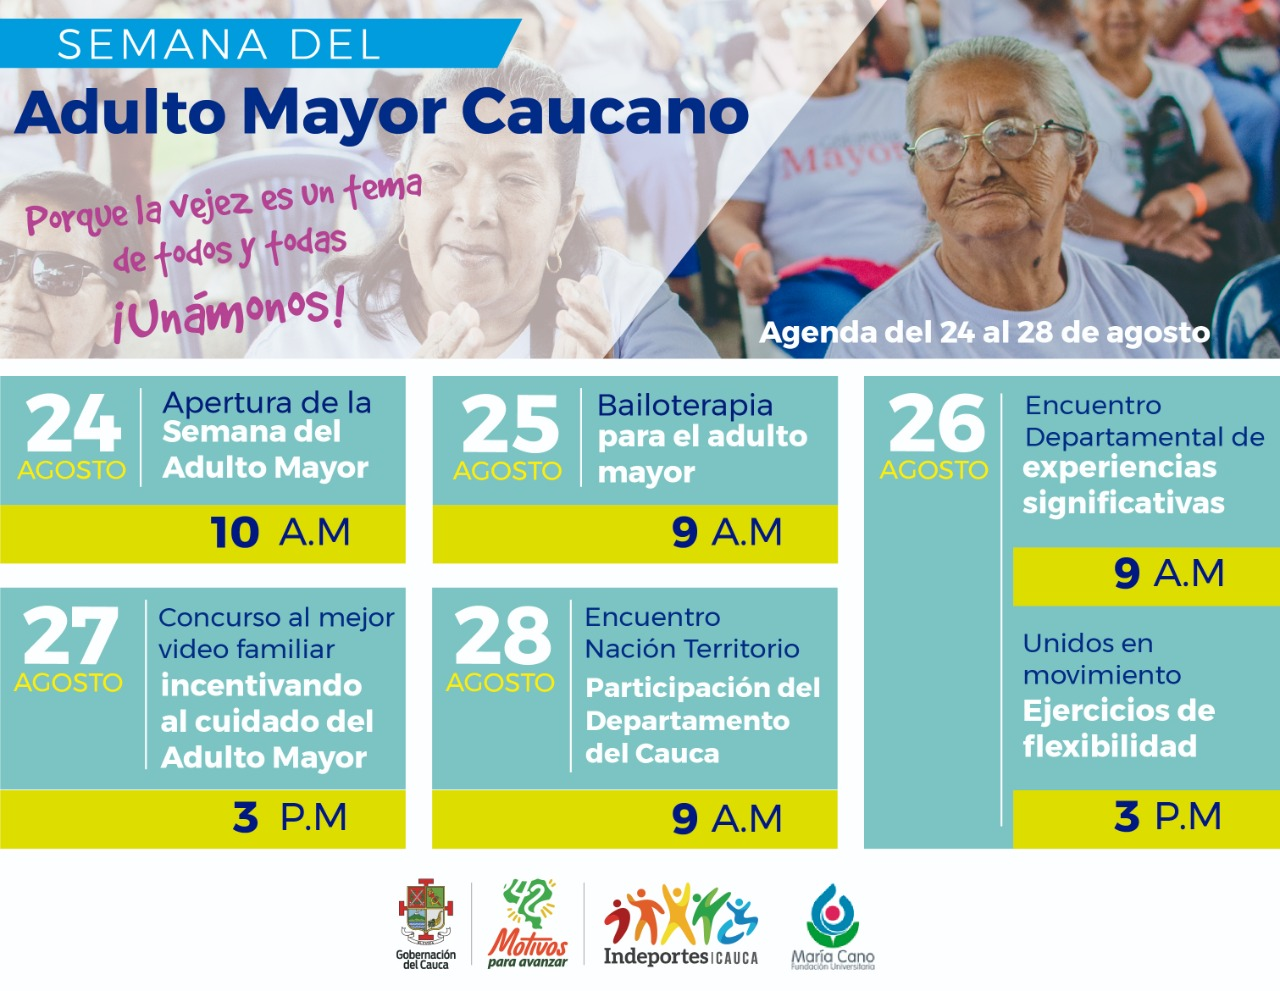 AGENDA SEMANA ADULTO MAYOR CAUCANO